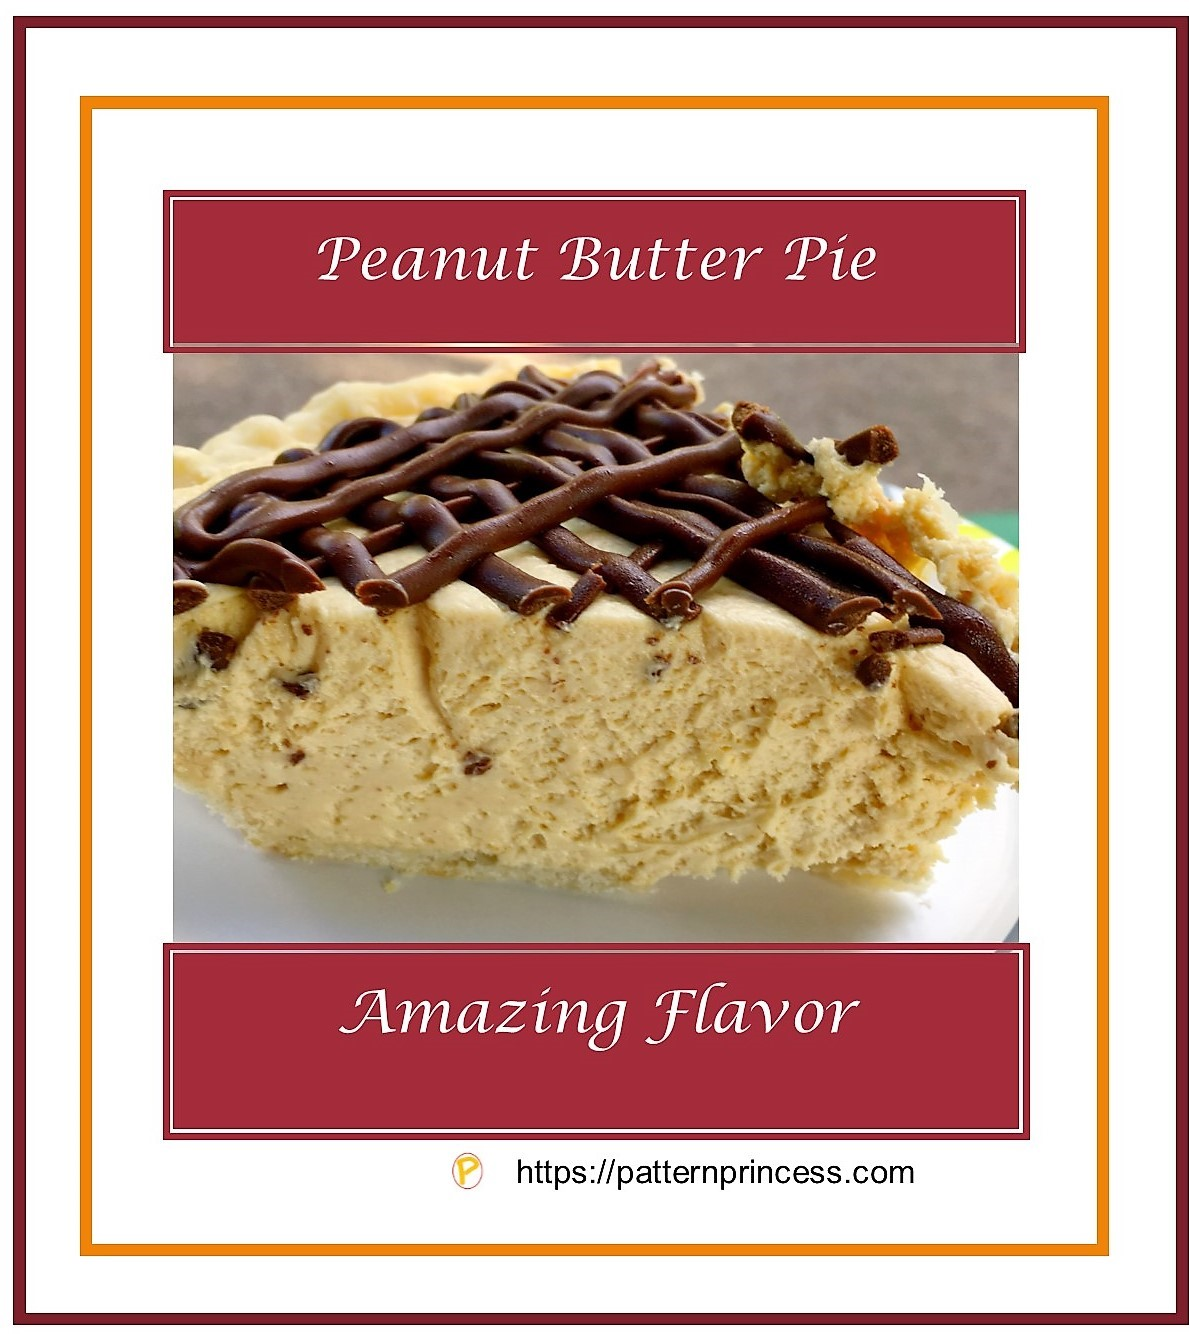 Peanut Butter Pie 1